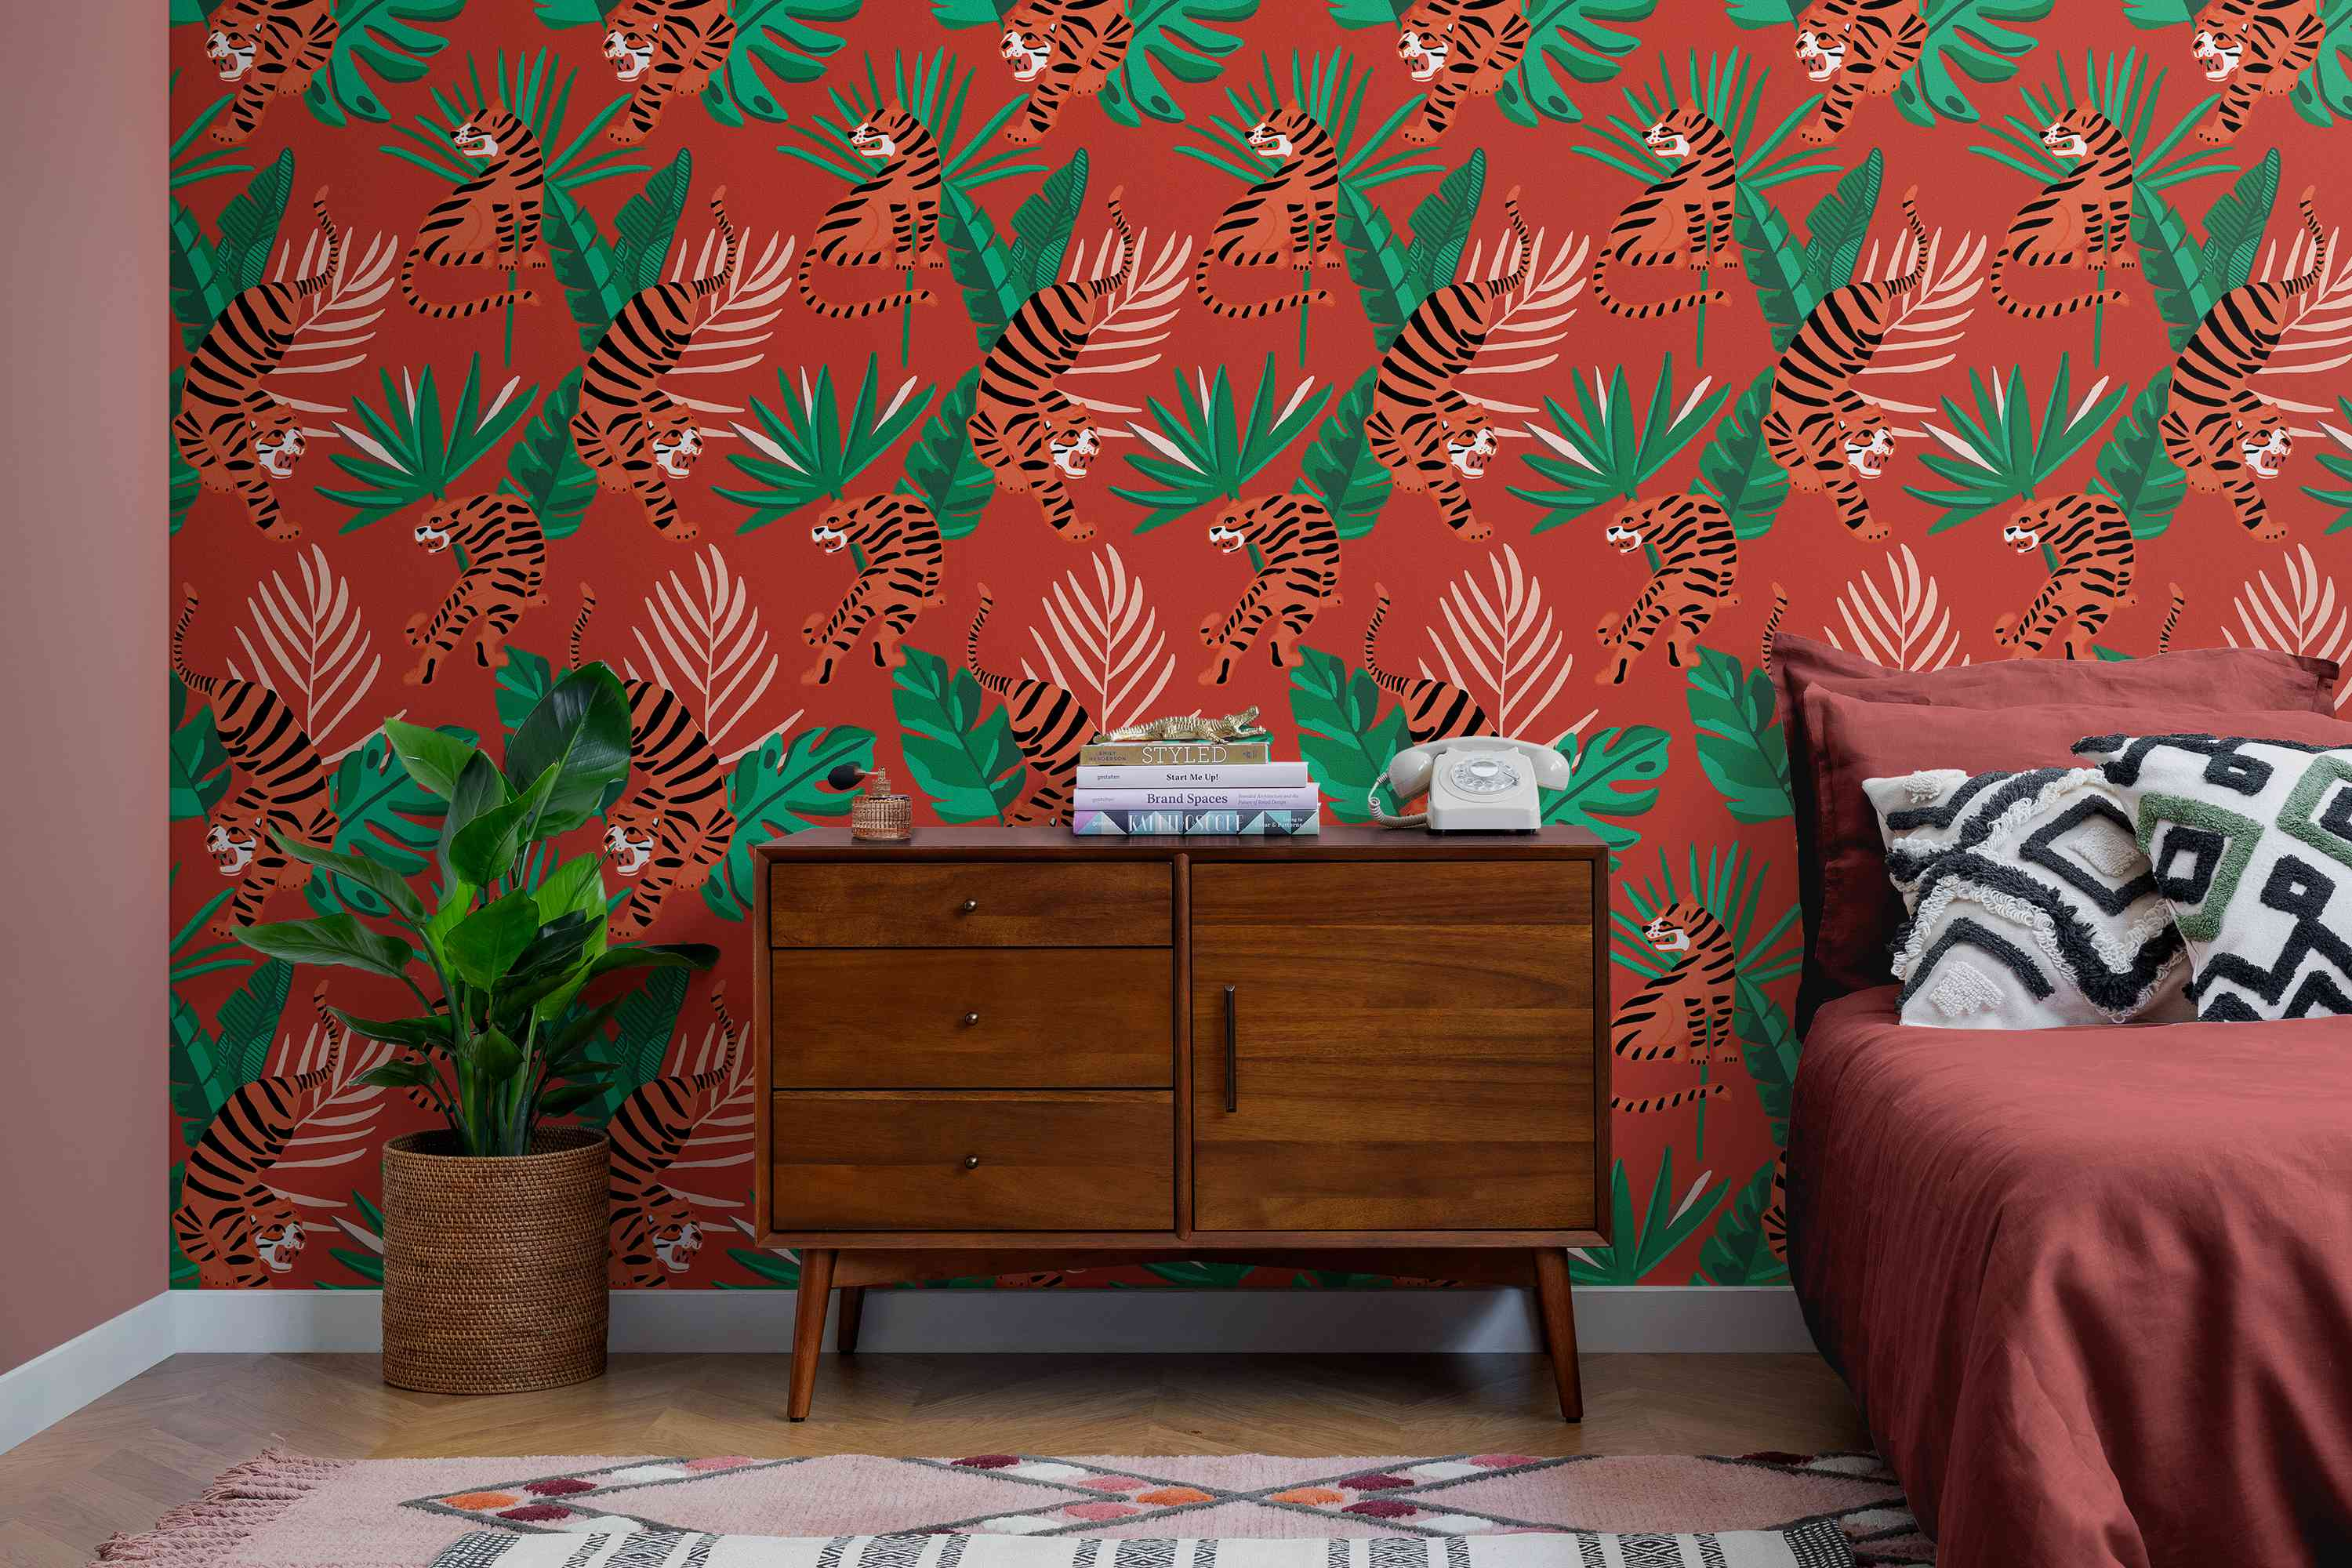 Wild Tiger Big Cat Tropical Leaves Wallpaper Mural inspired by Wes Anderson movies.